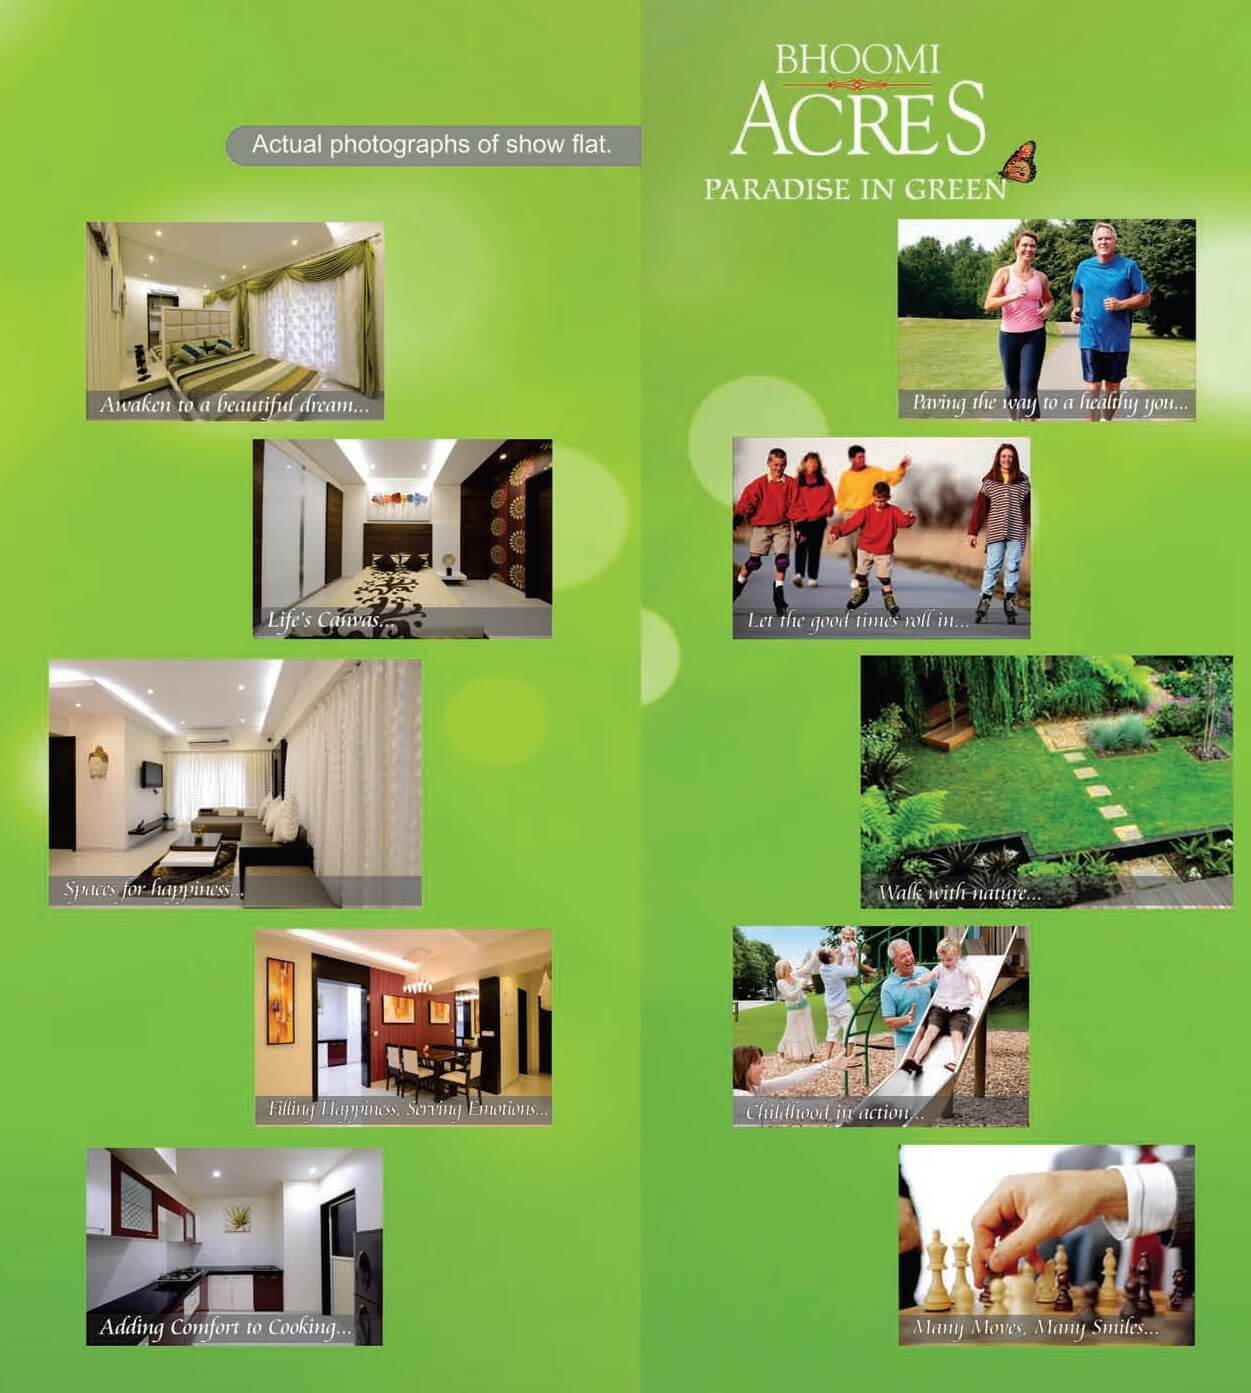 bhoomi acres m wing amenities features2